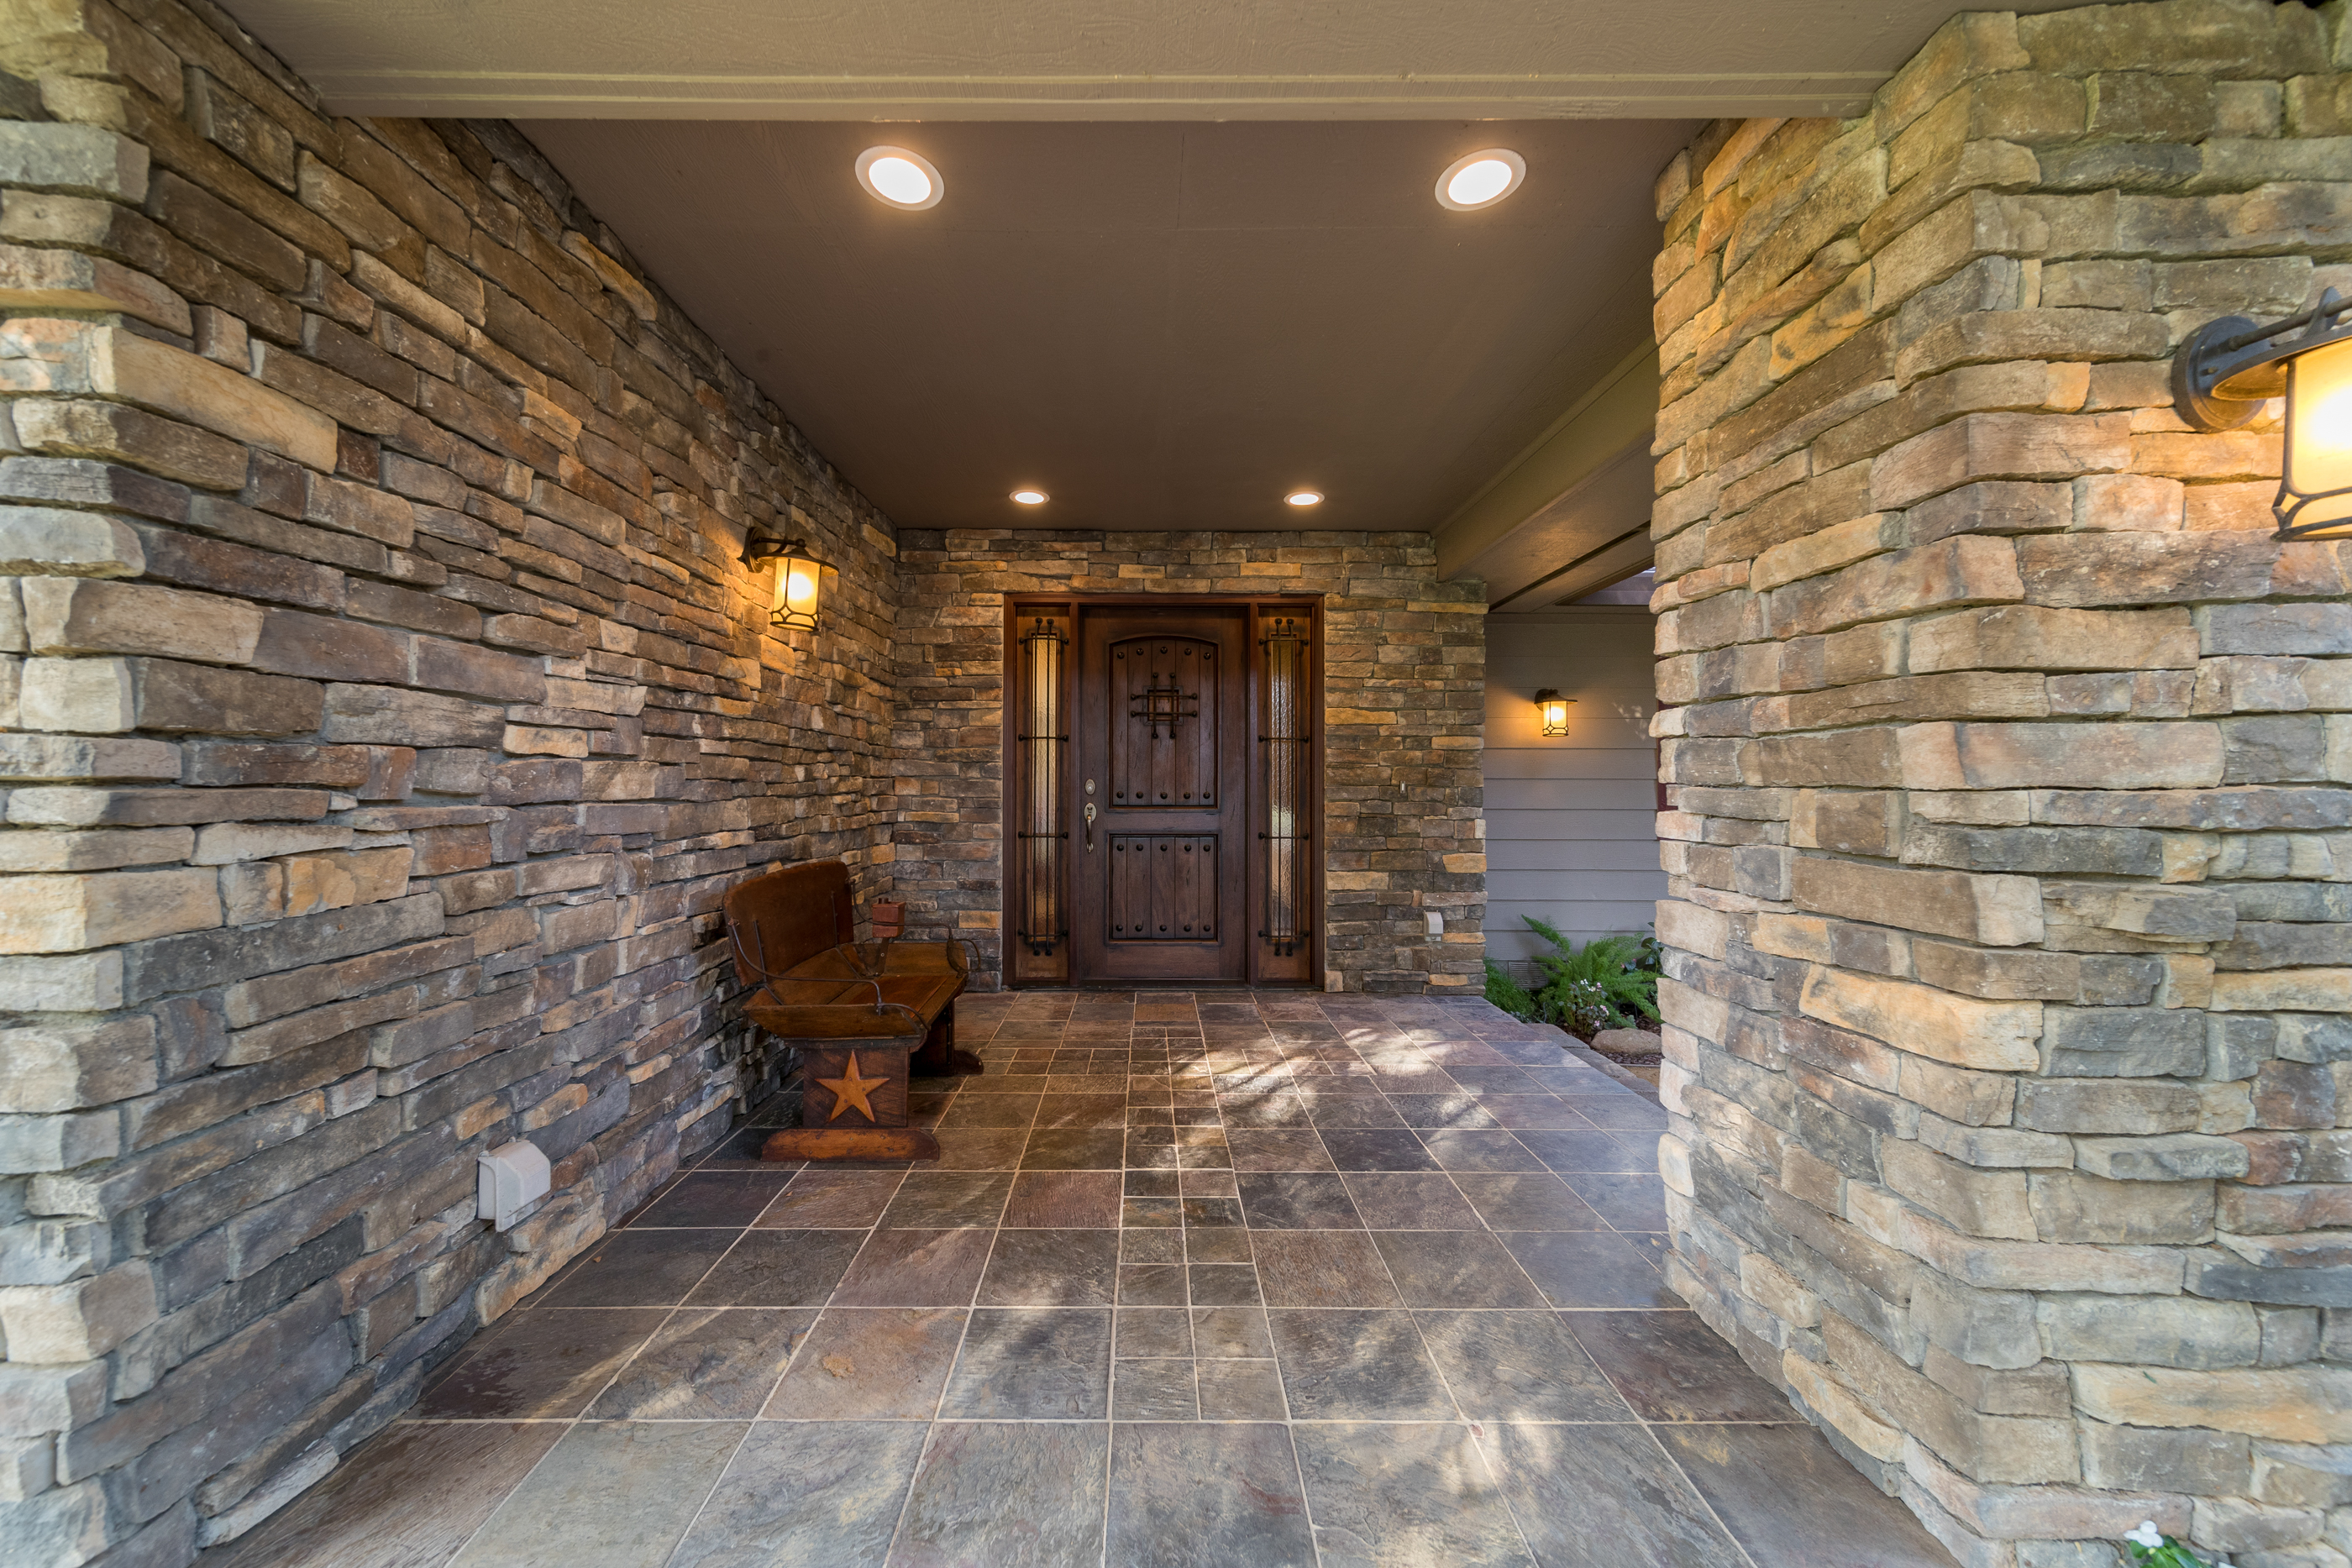 photography portfolio example - front porch with wooden front door and cobblestone exterior